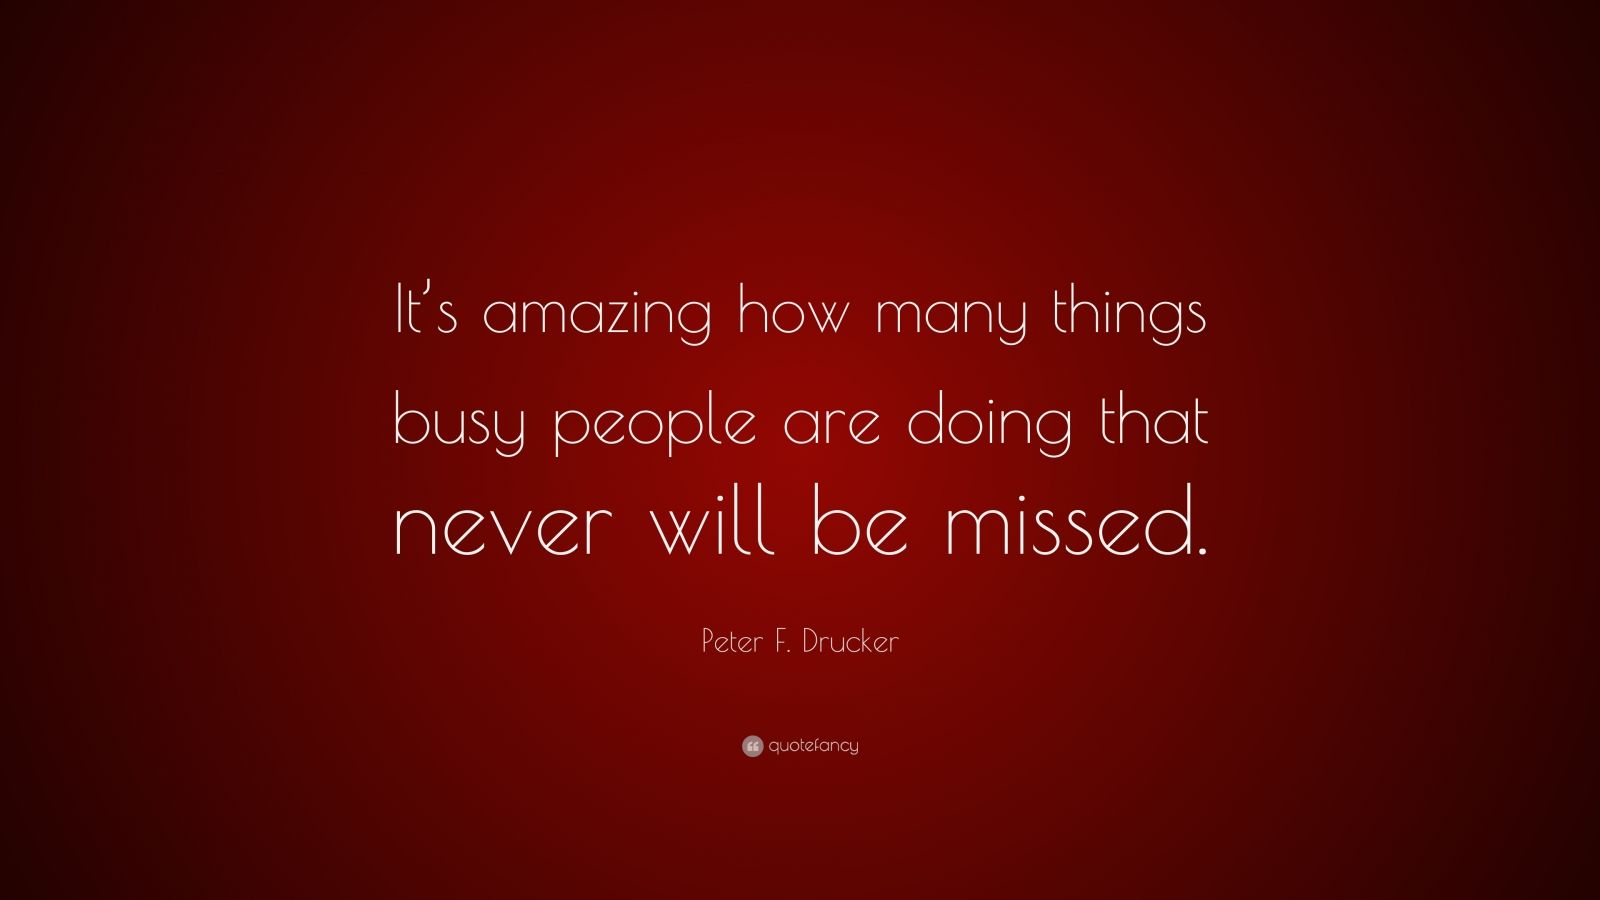 "Peter F. Drucker Quote: ""It's amazing how many things busy people are doing that never will be missed."""